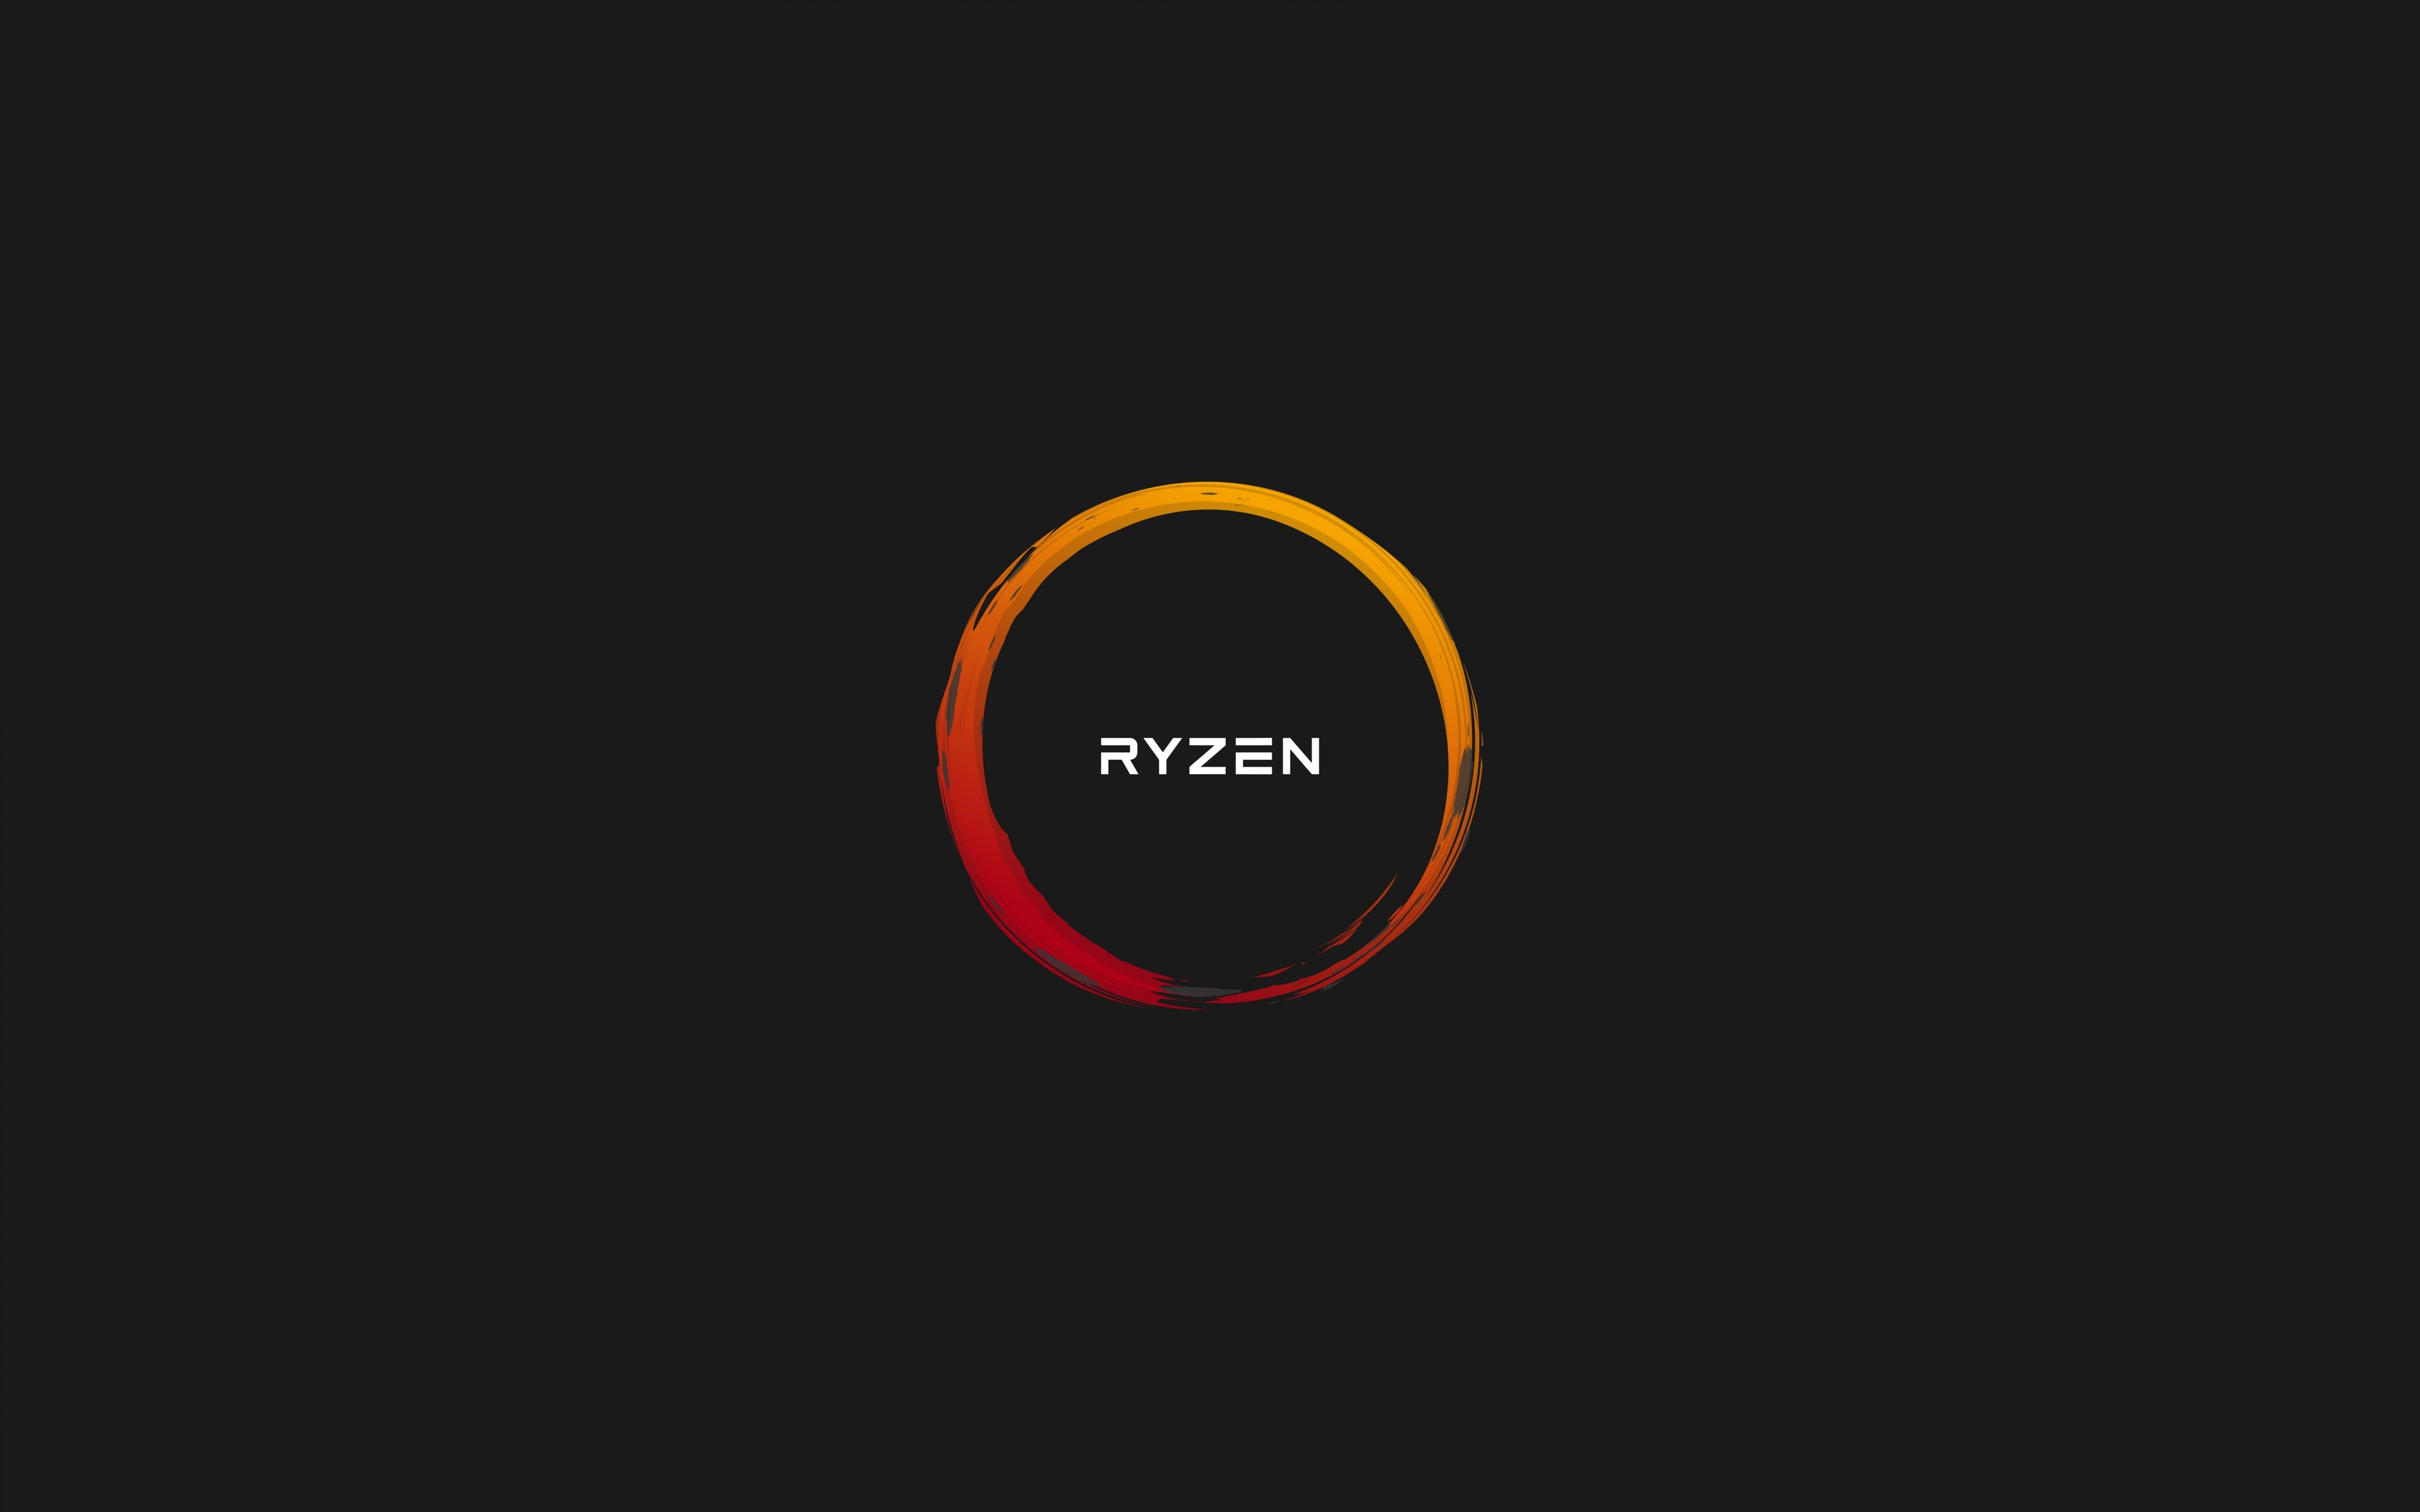 Download Amd Ryzen 8k 4K resolution 16:10 ratio wallpapers